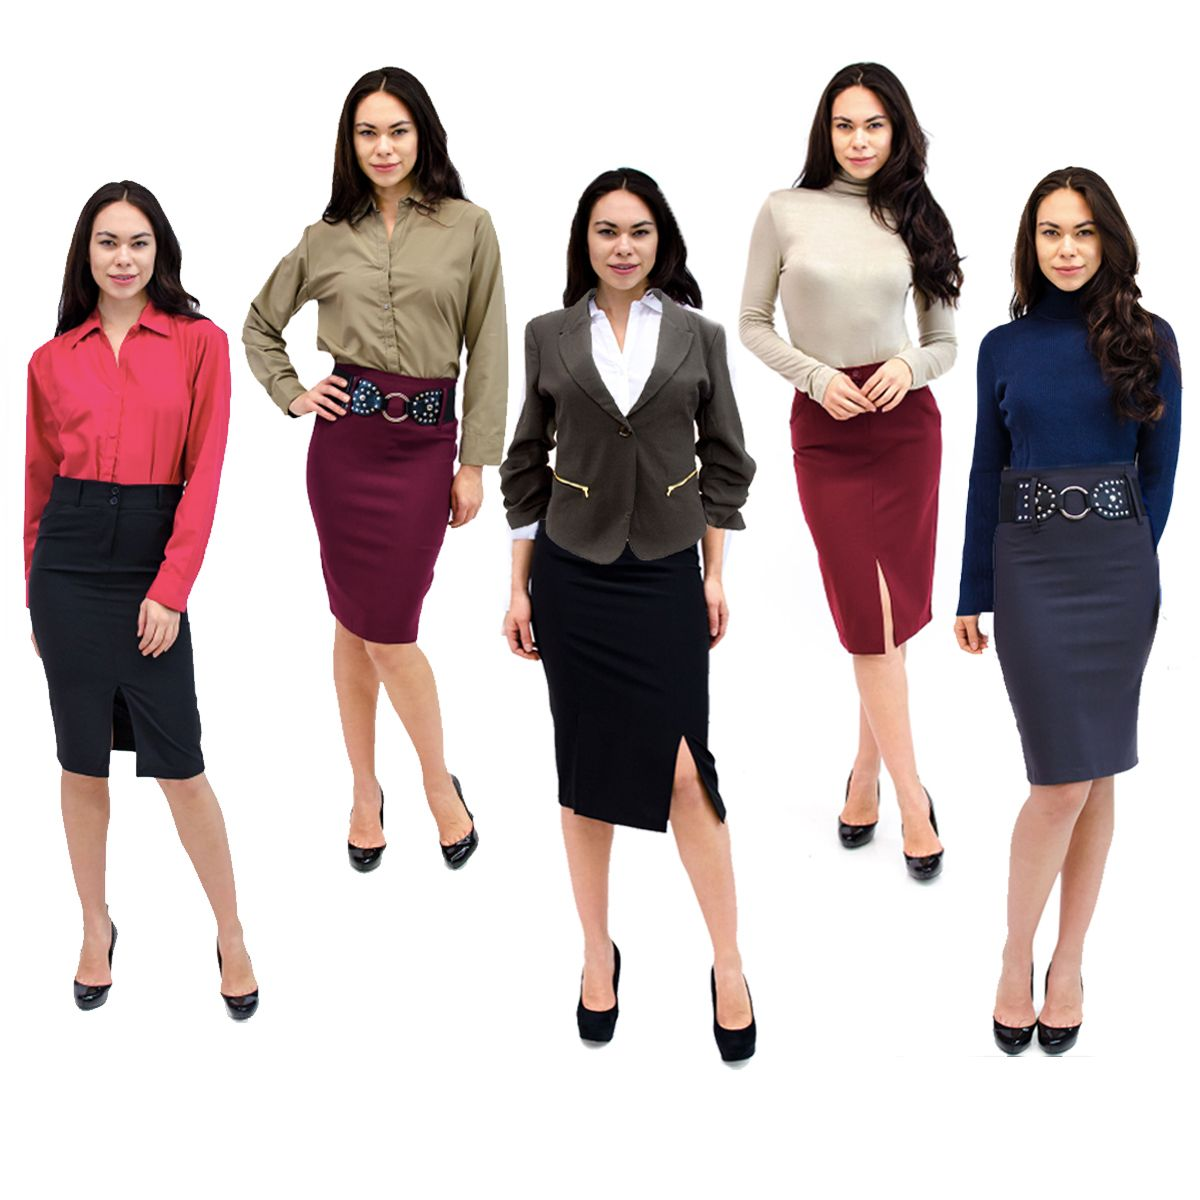 783862e7c8 Popular Dress Code Business Attire Bank Teller Dress Code Dressing ...